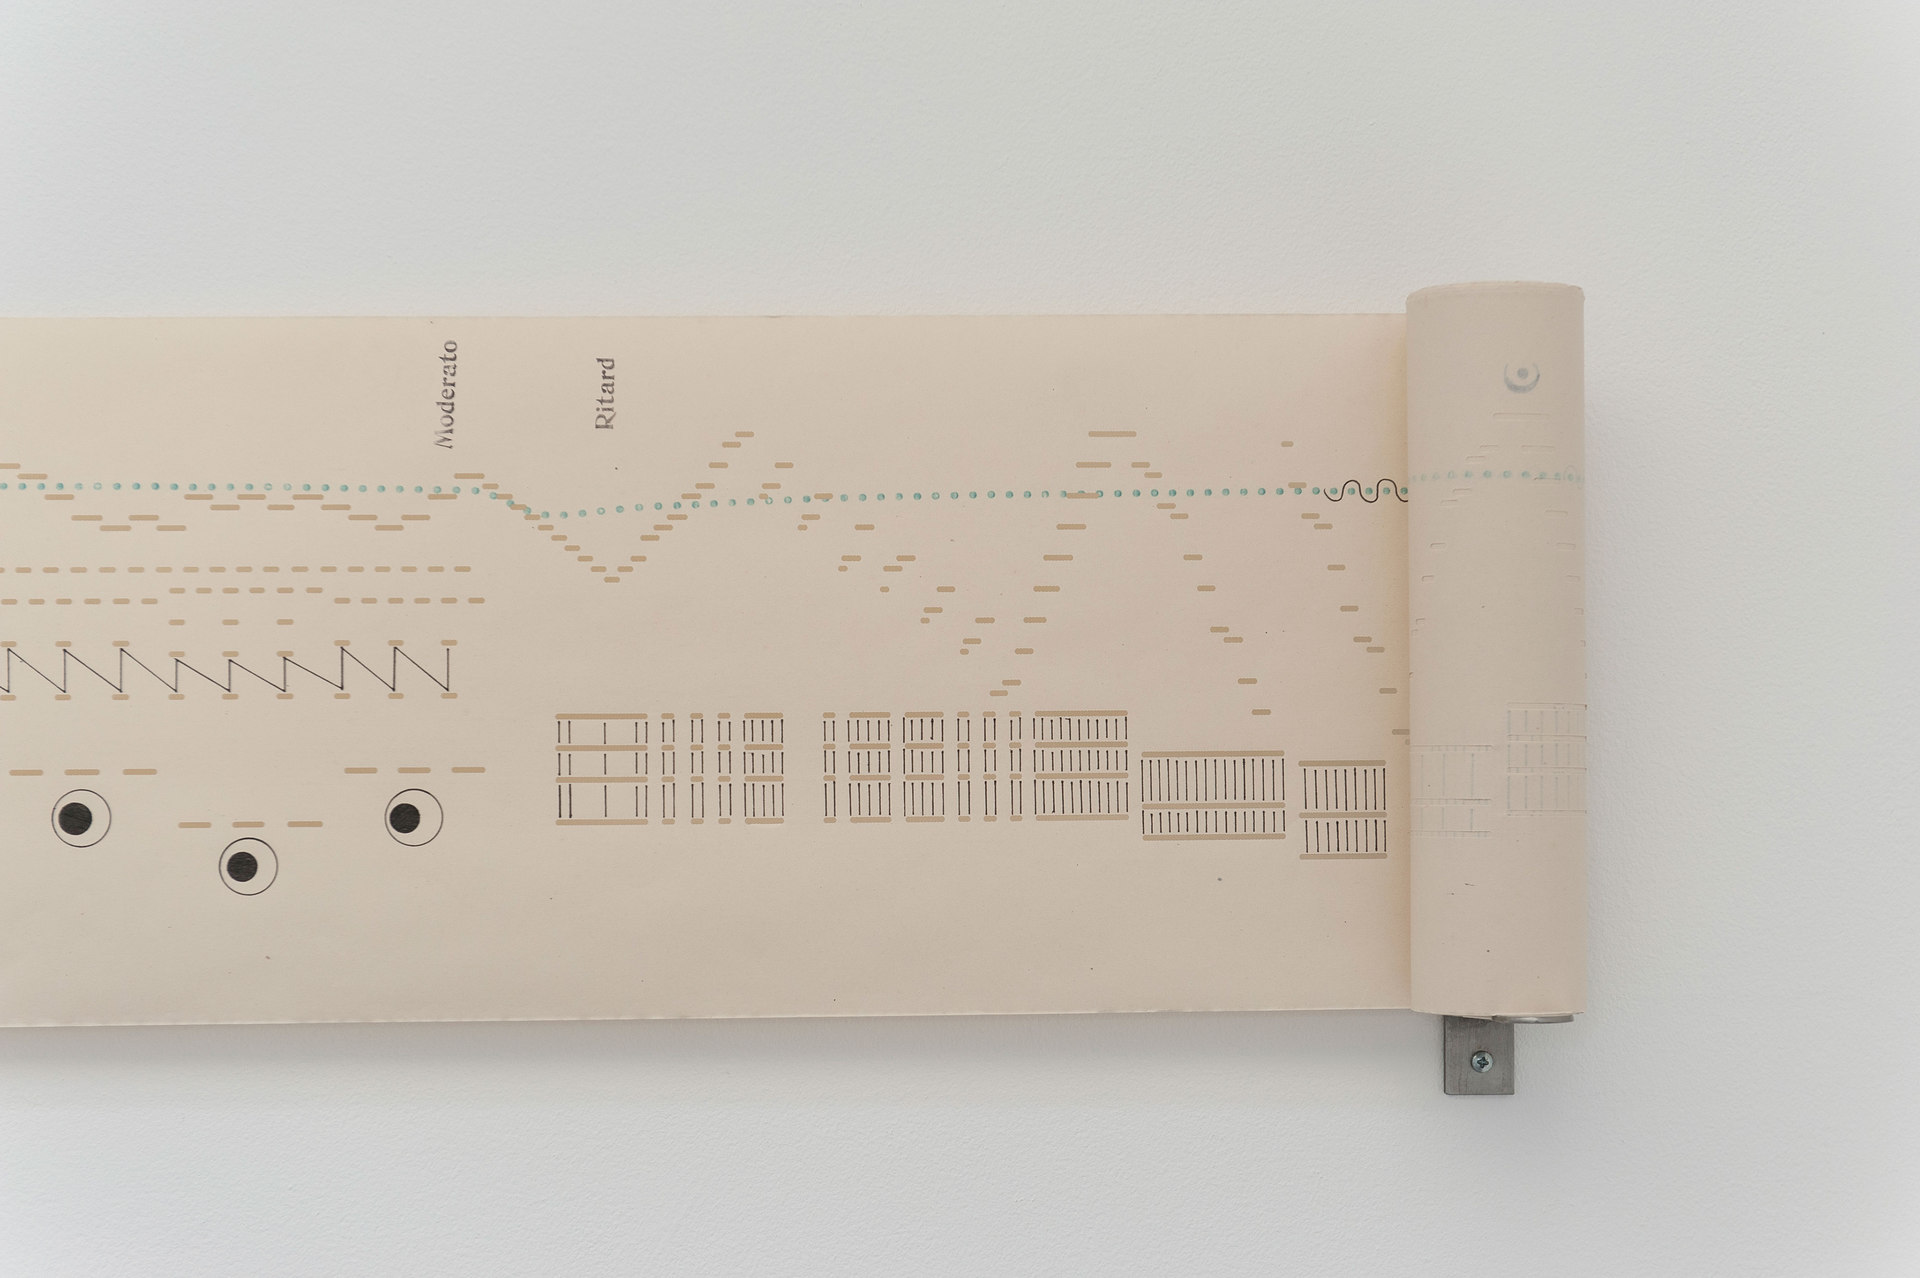 Aura Satz, Visual Score, 2012, 270 x 28.5cm ink drawing on pianola paper, stainless steel, 28.5 x 270 x 14cm, Cell Project Space